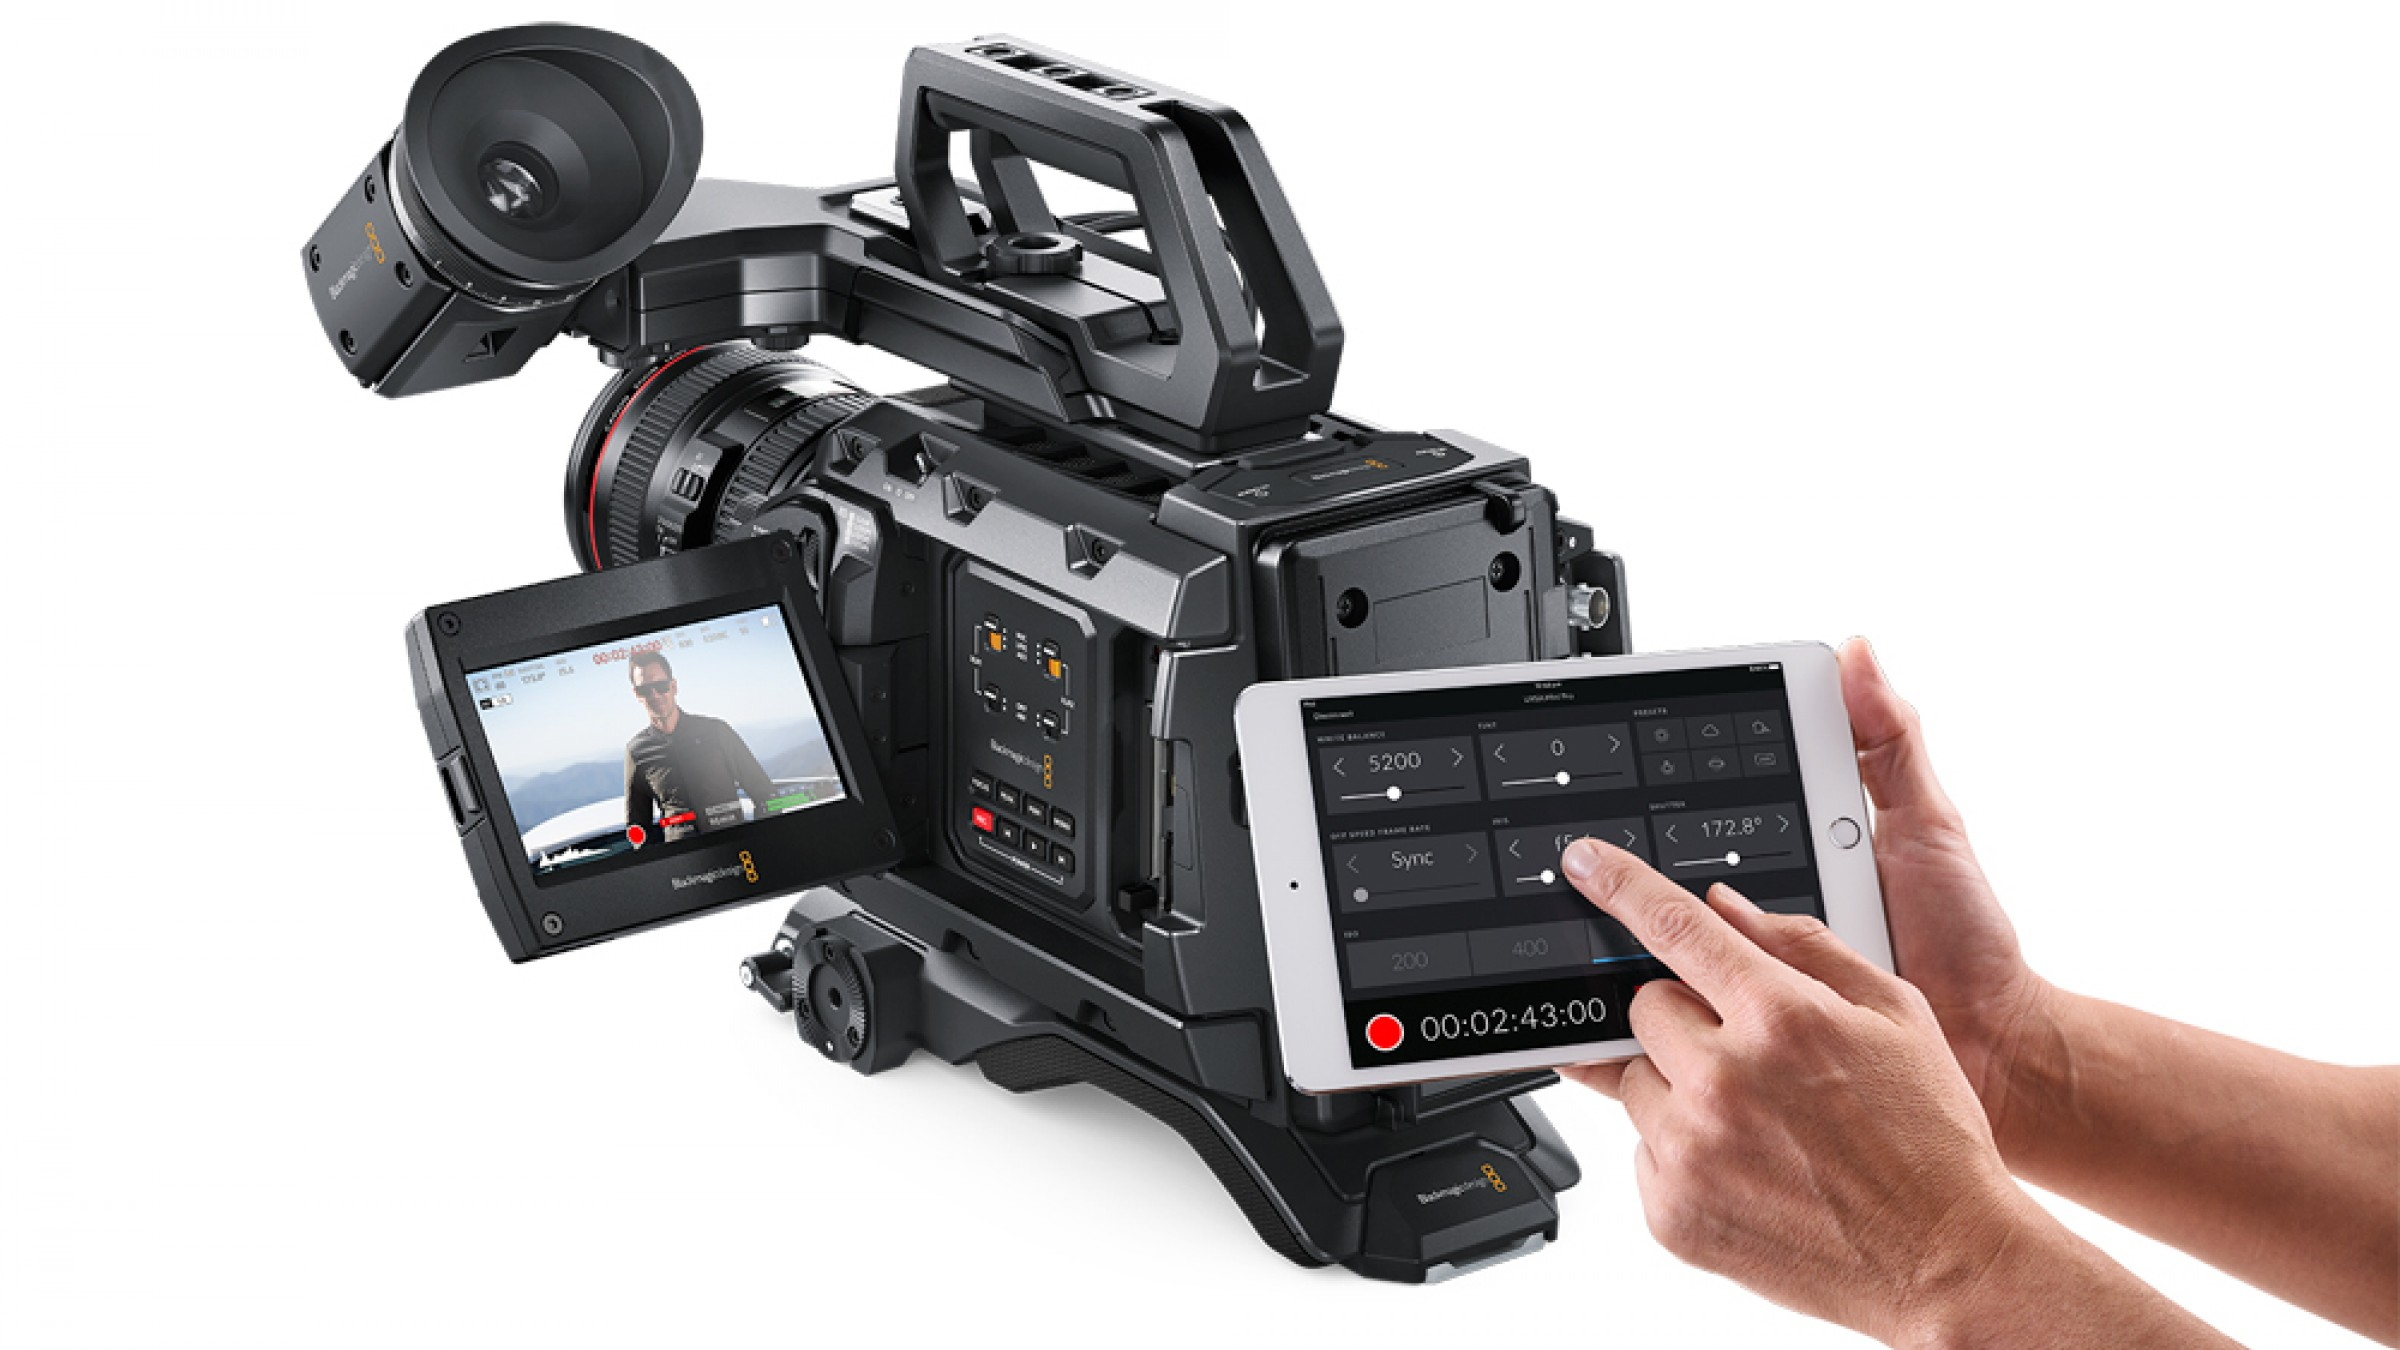 Blackmagic Design Releases Camera Control App for URSA Mini Pro